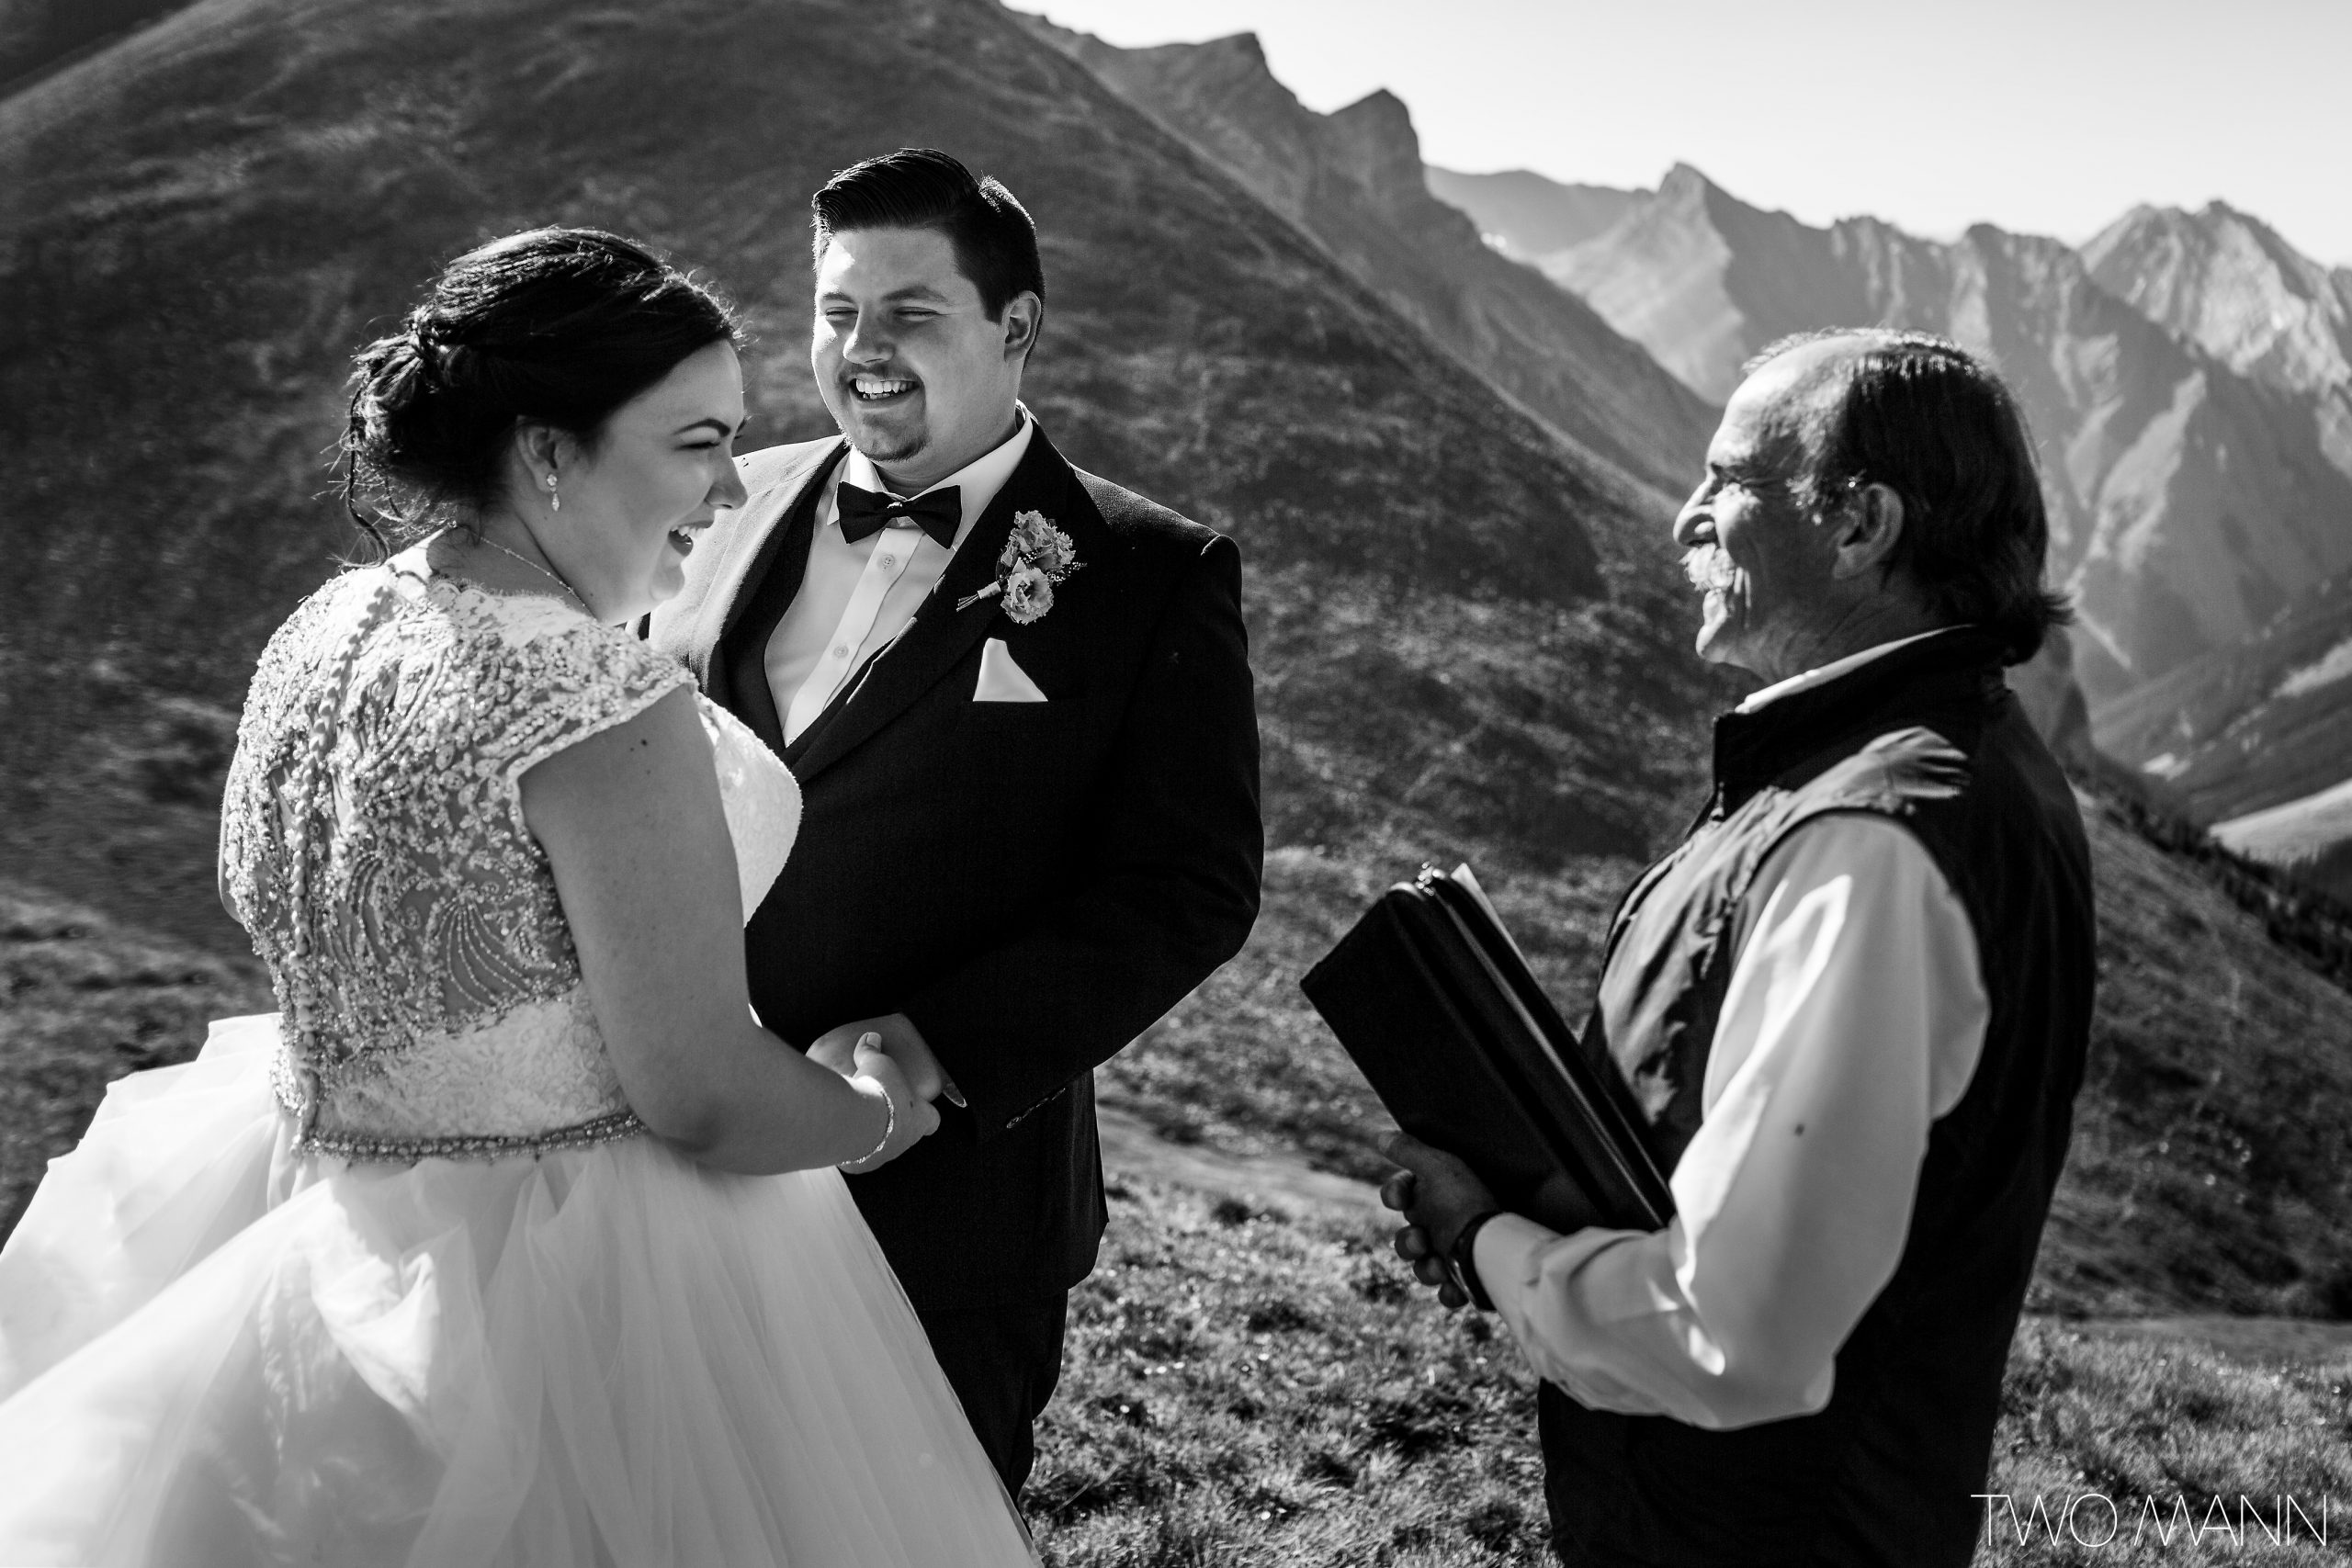 bride and groom and wedding commissioner in mountains during heli-elopement ceremony with laughter